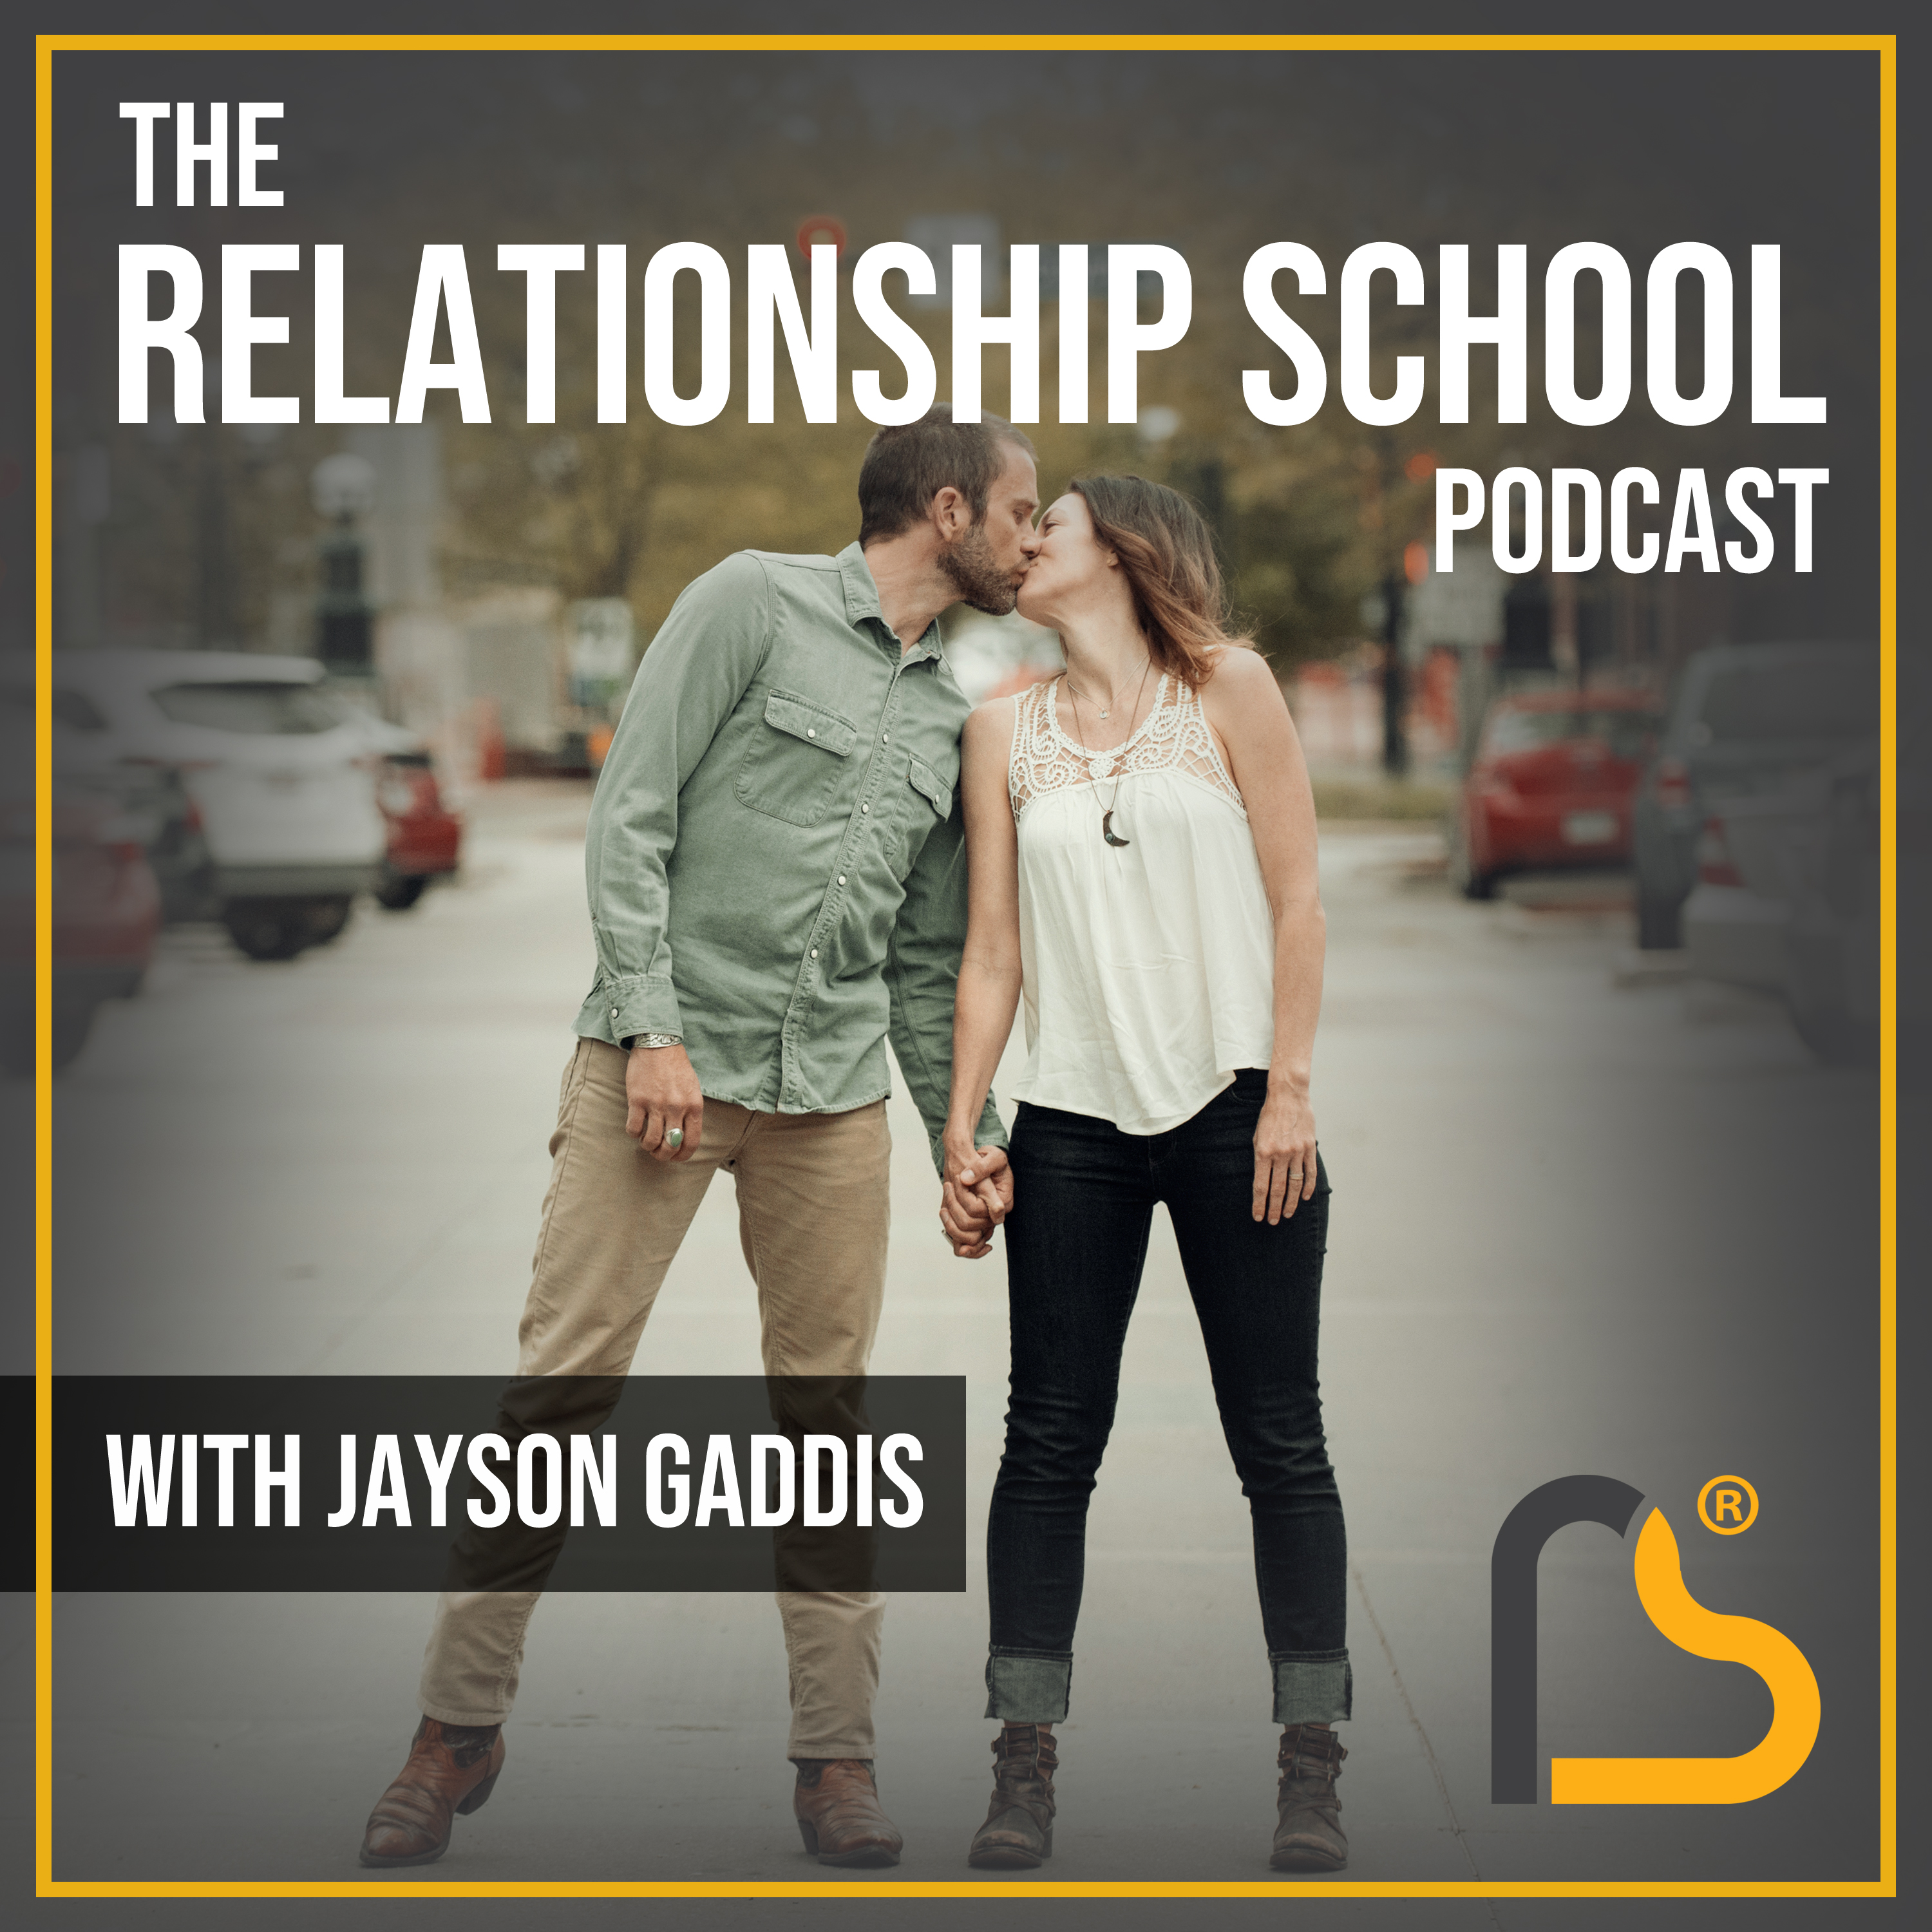 The Relationship School Podcast - How to Control Your Mind Using Acceptance & Commitment Therapy with Steven Hayes - Relationship School Podcast EPISODE 263